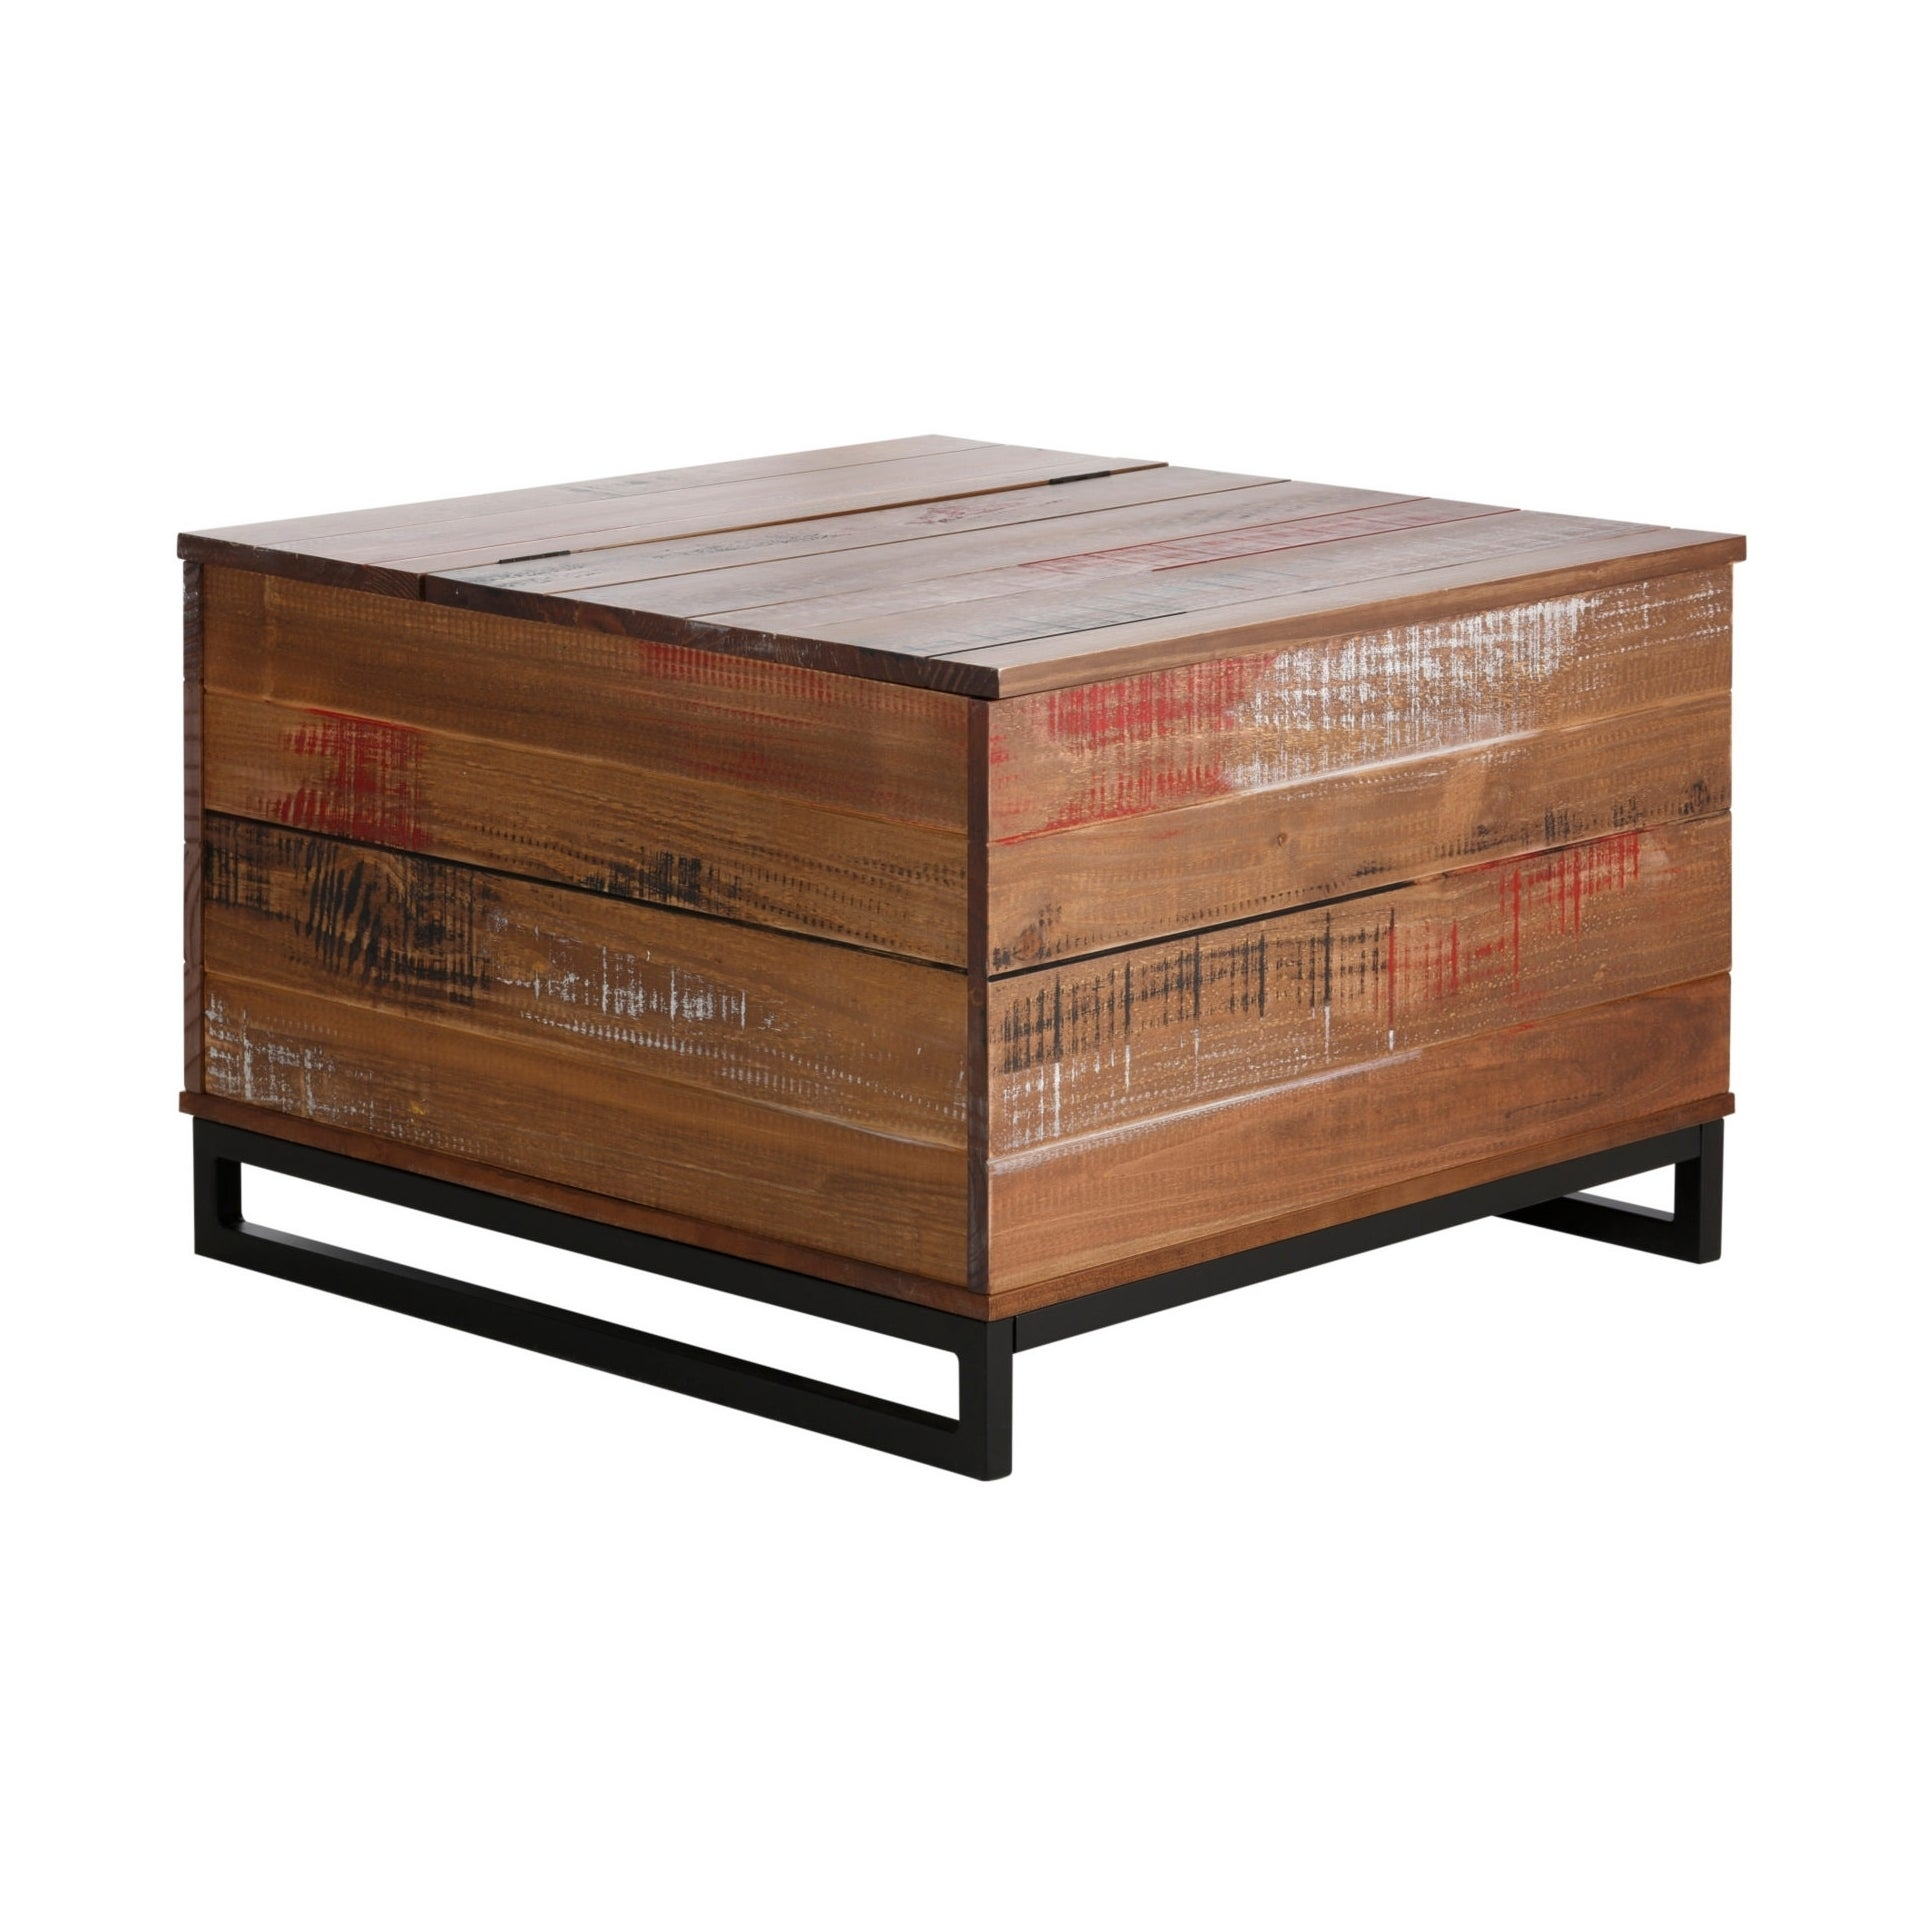 Scandinavian Living Santana Distressed Brown Pinewood Trunk Storage Table    Free Shipping Today   Overstock   24209865